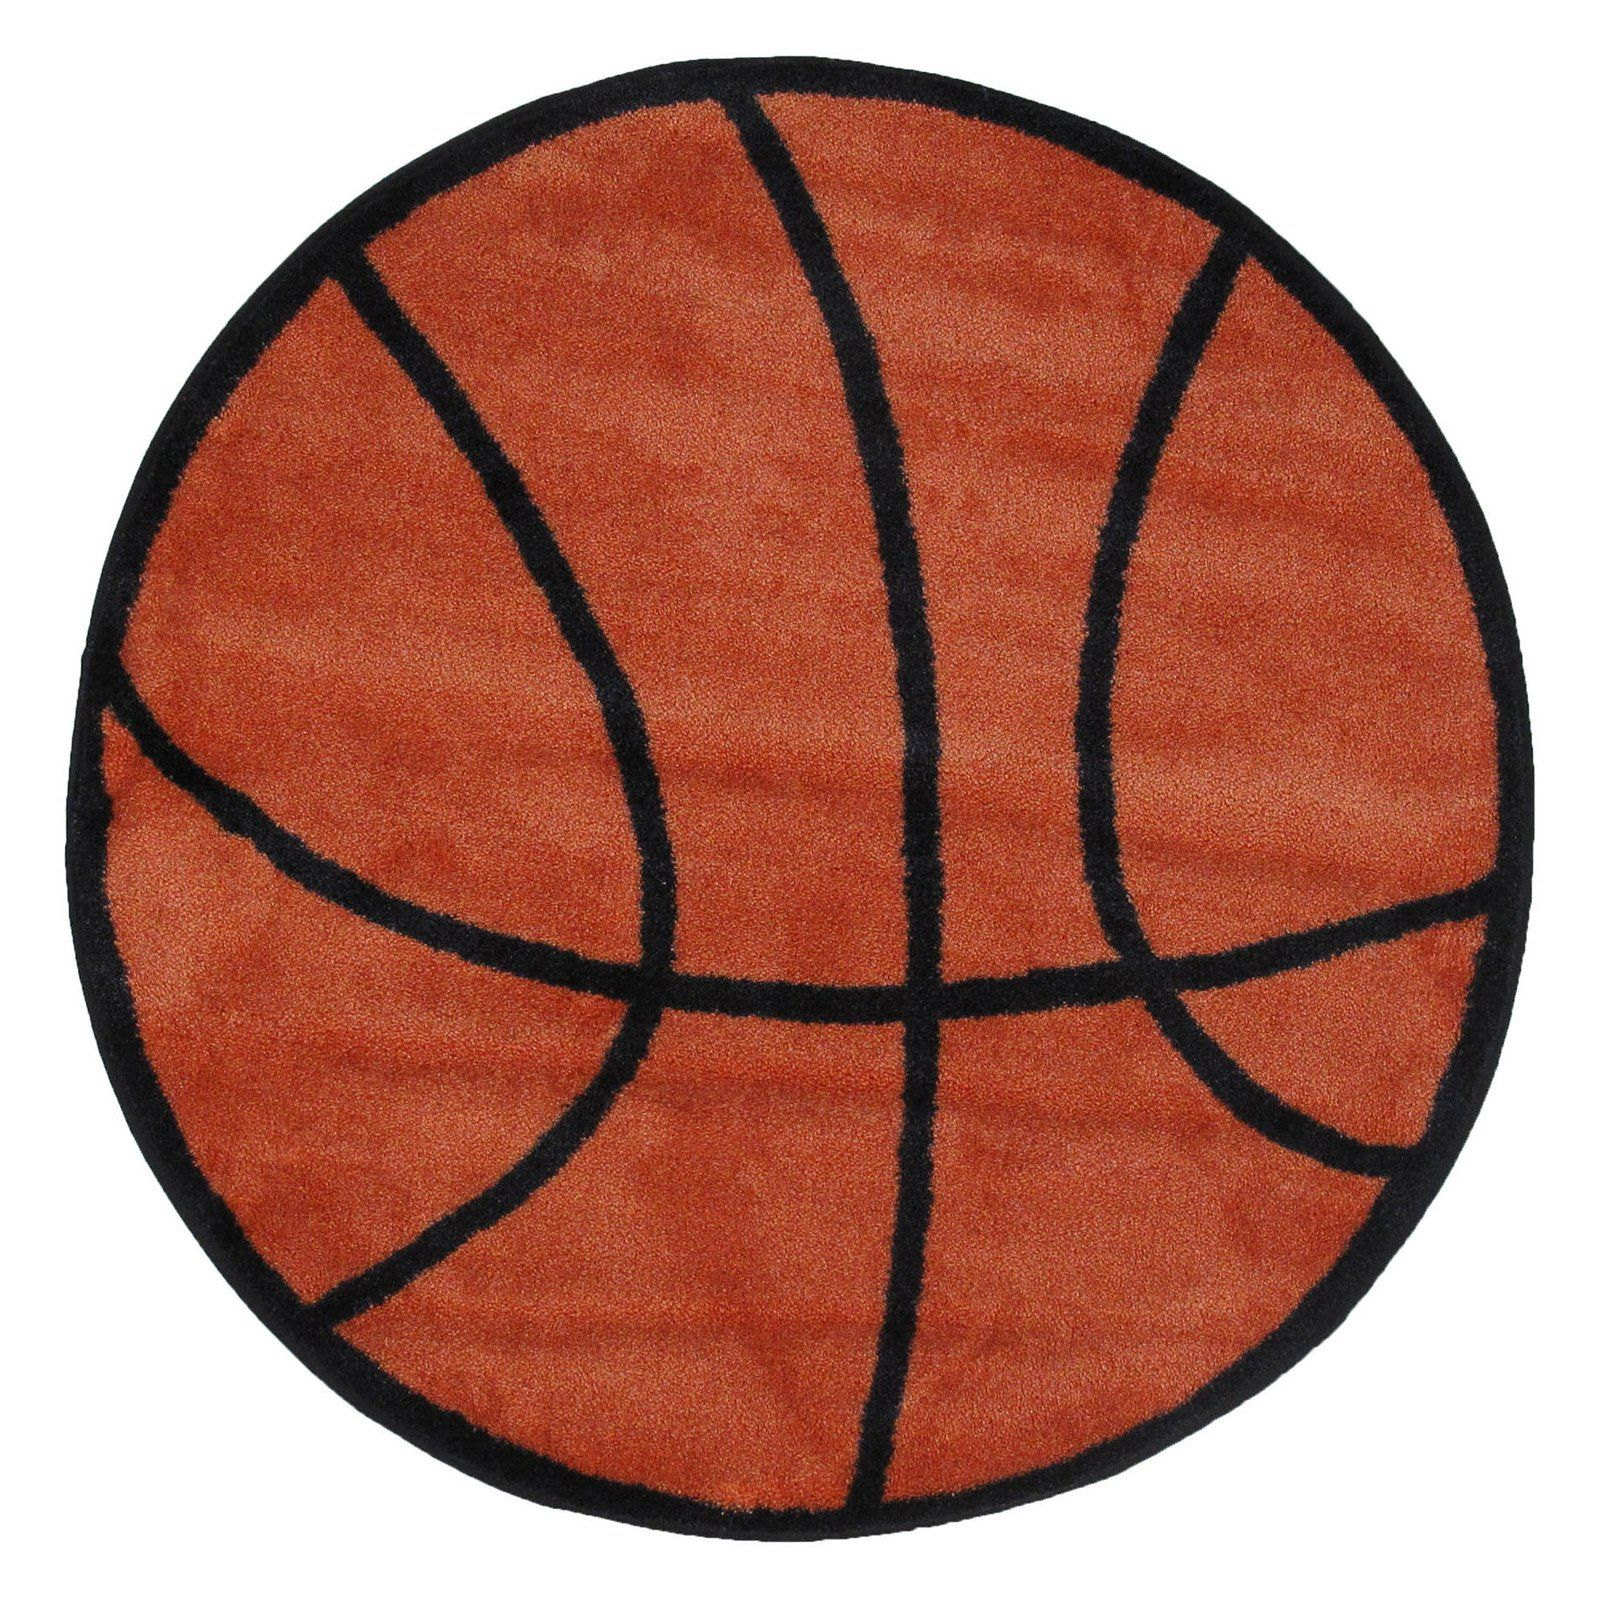 Fun Rugs Fun Time Shape FTS-004 Basketball Area Rug - Multicolor | from hayneedle.com